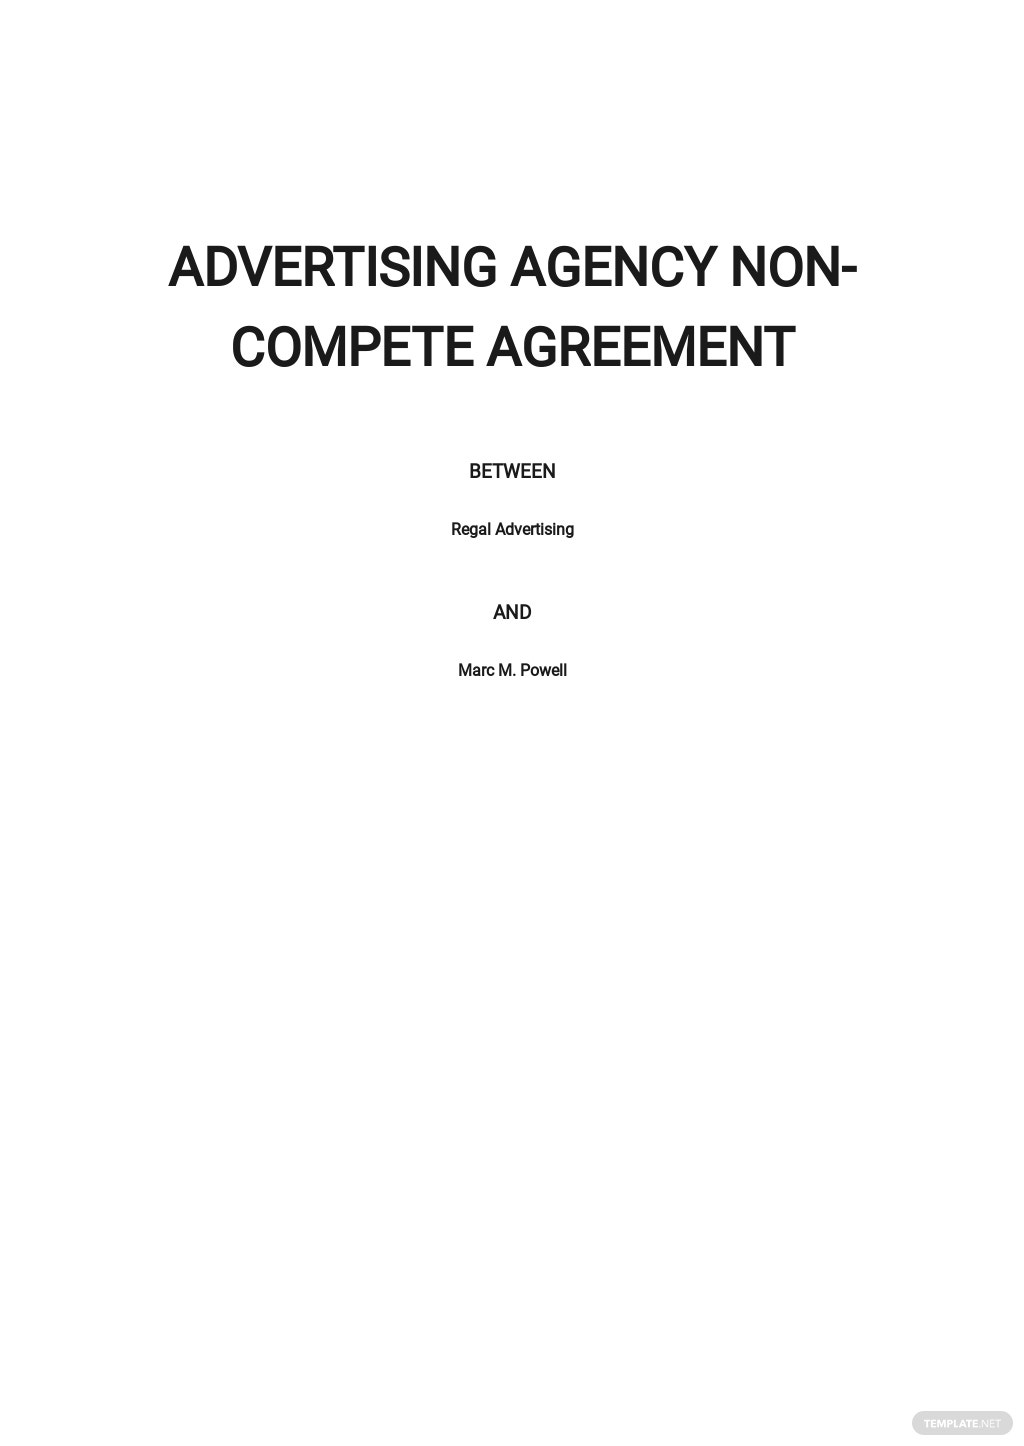 Advertising Agency Non-Compete Agreement Template